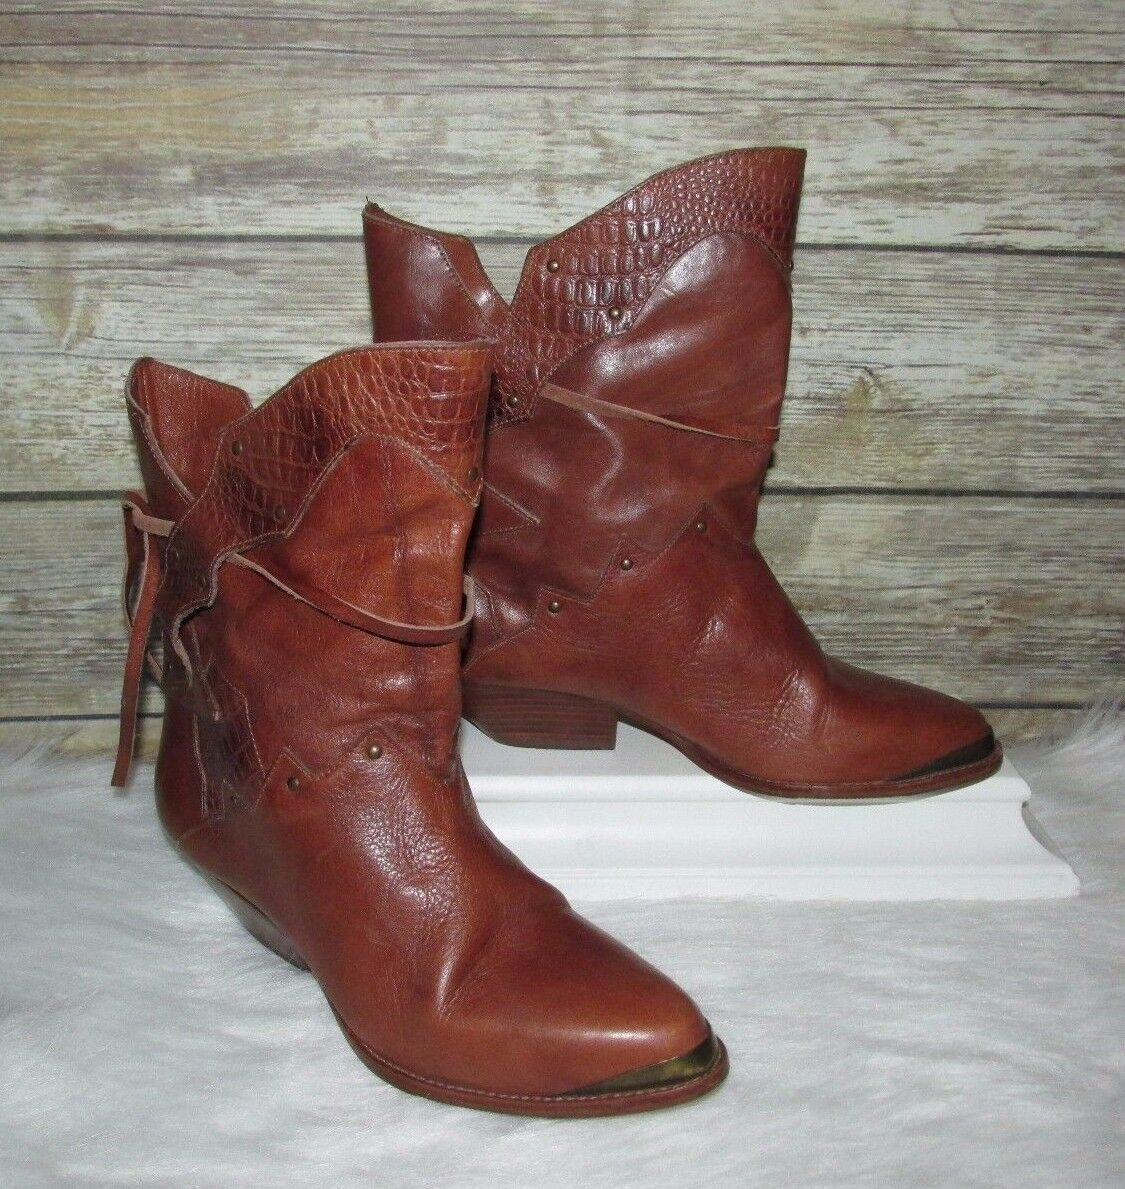 Vntg Rush Hour Brown Genuine Leather Western Style Croc Trim Ankle Boots Sz 6.5B